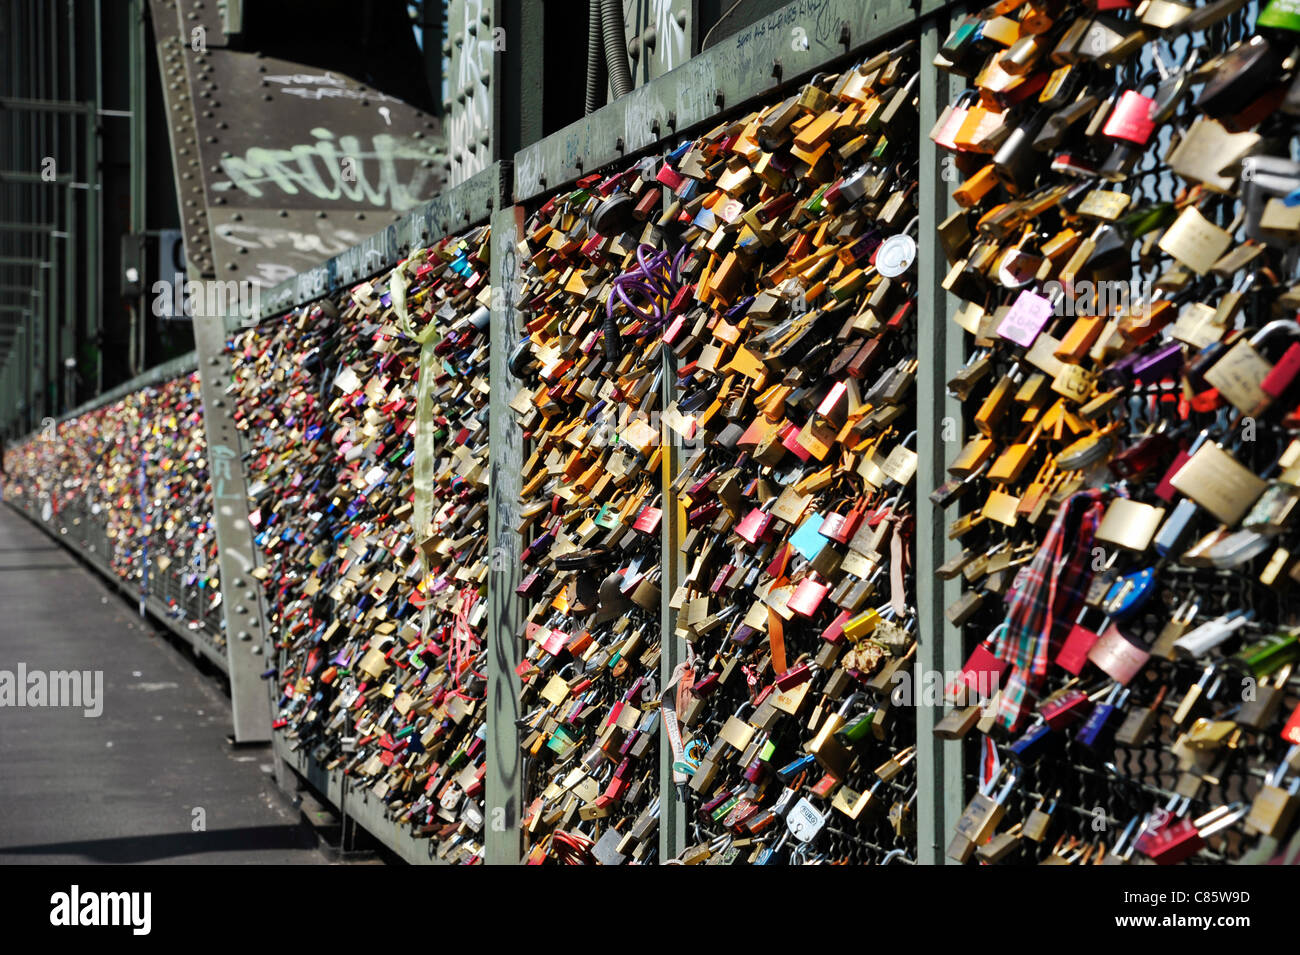 Love Padlocks, or Love Locks affixed to a security fence on Hohenzollern bridge in Cologne, Germany - Stock Image